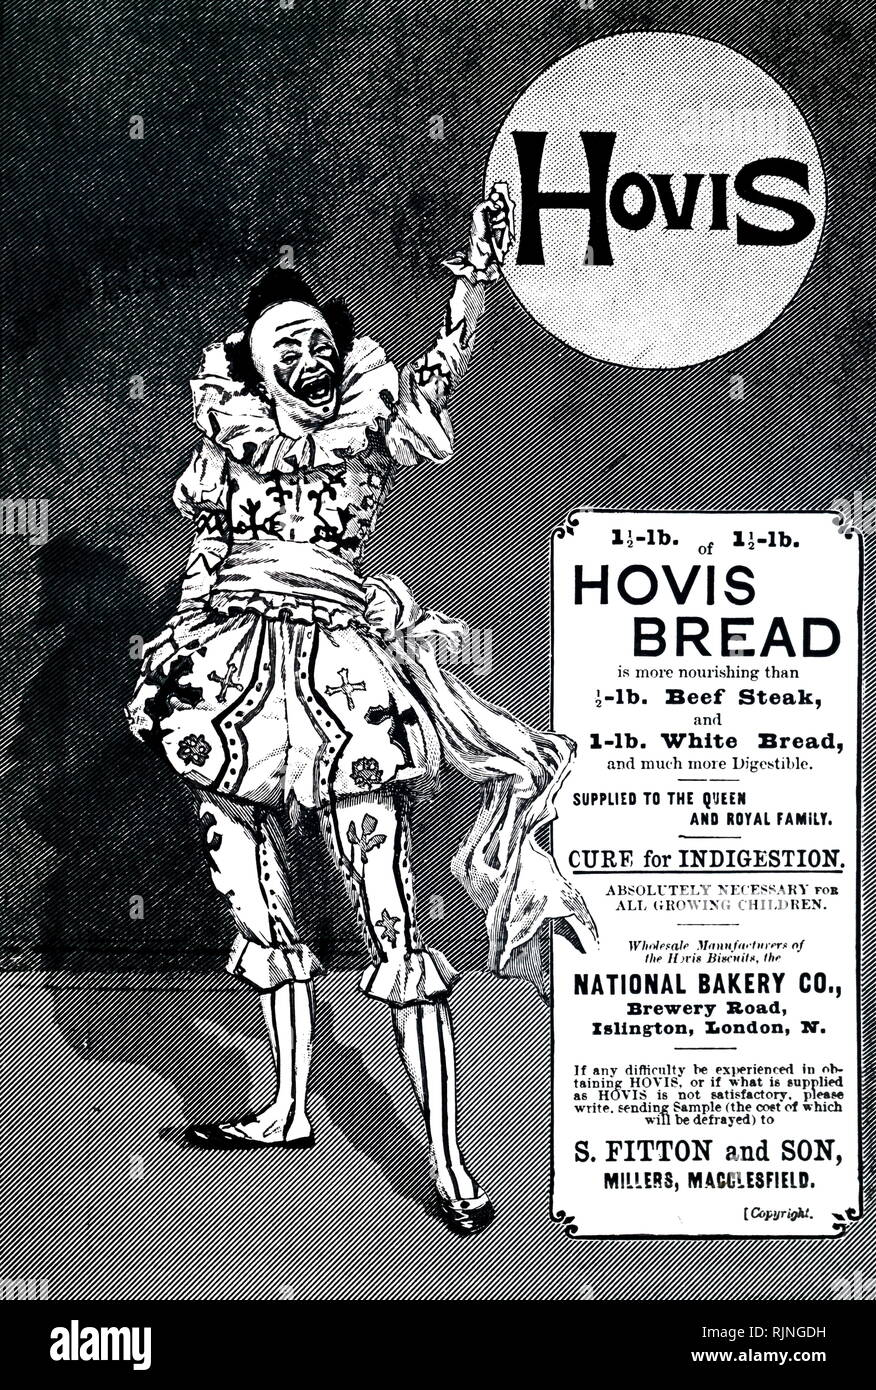 An advertisement for Hovis bread. Dated 19th century - Stock Image